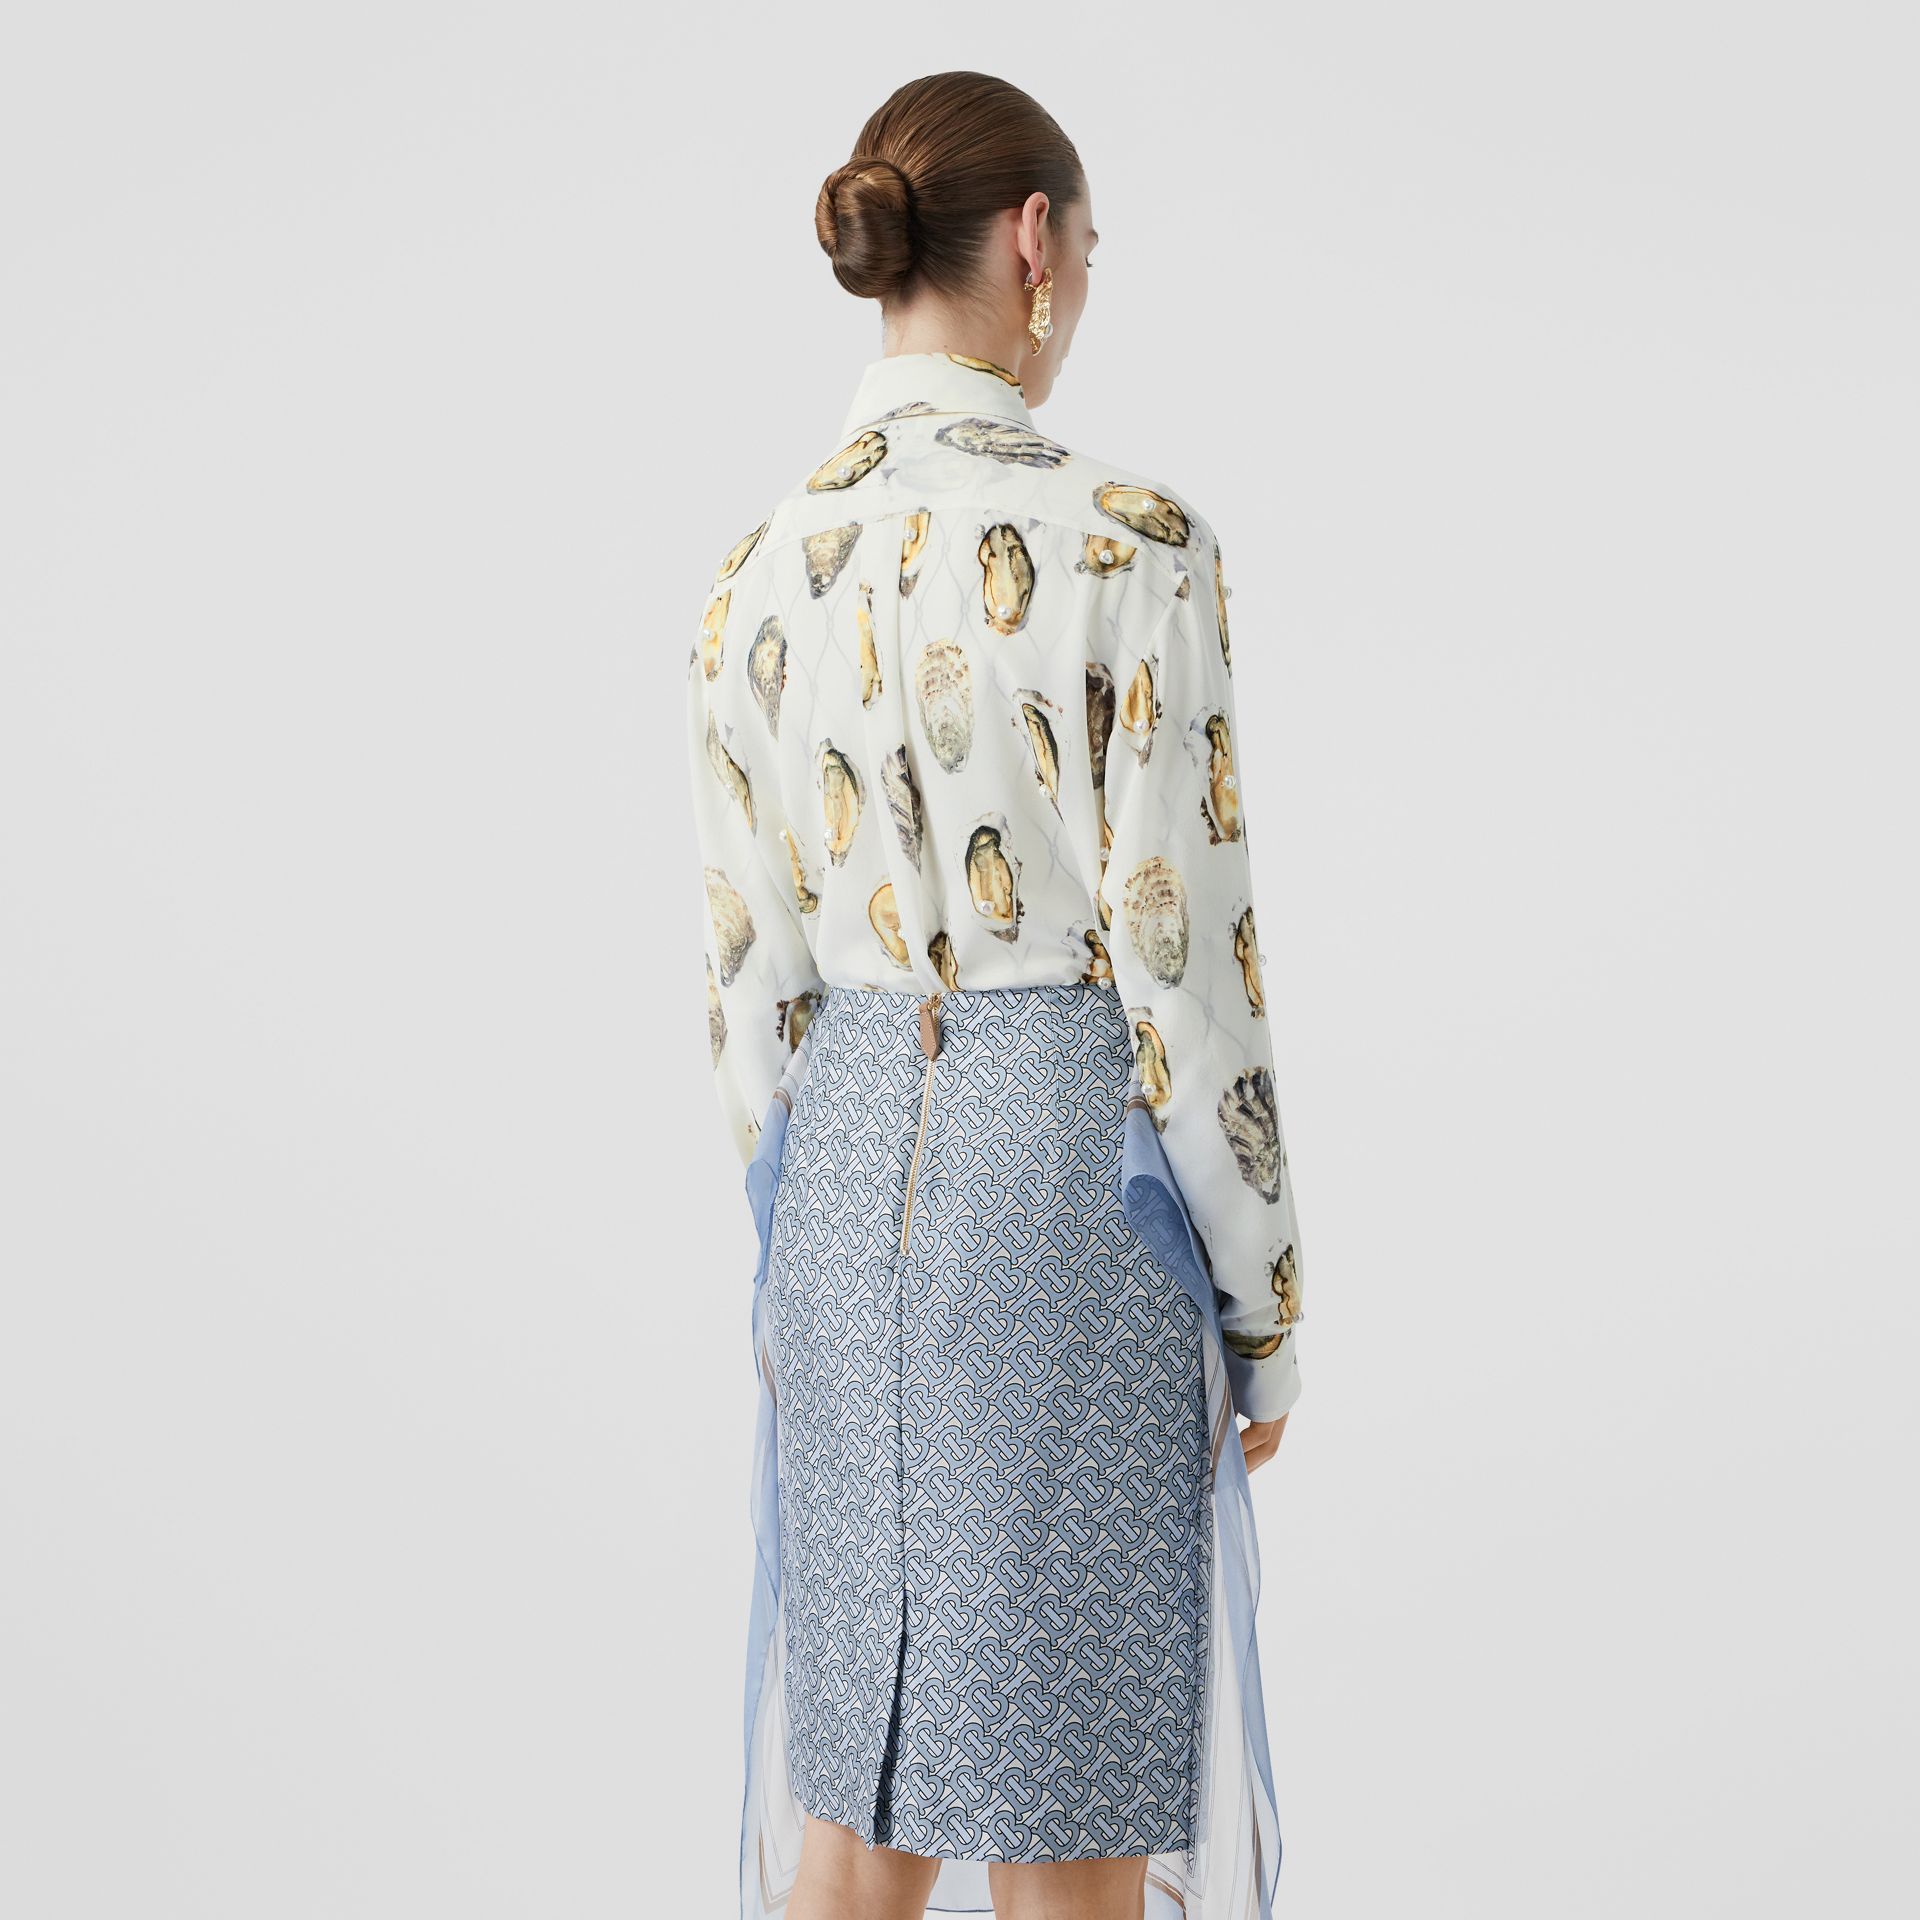 Embellished Oyster Print Silk Oversized Shirt in White - Women | Burberry Hong Kong S.A.R - gallery image 2